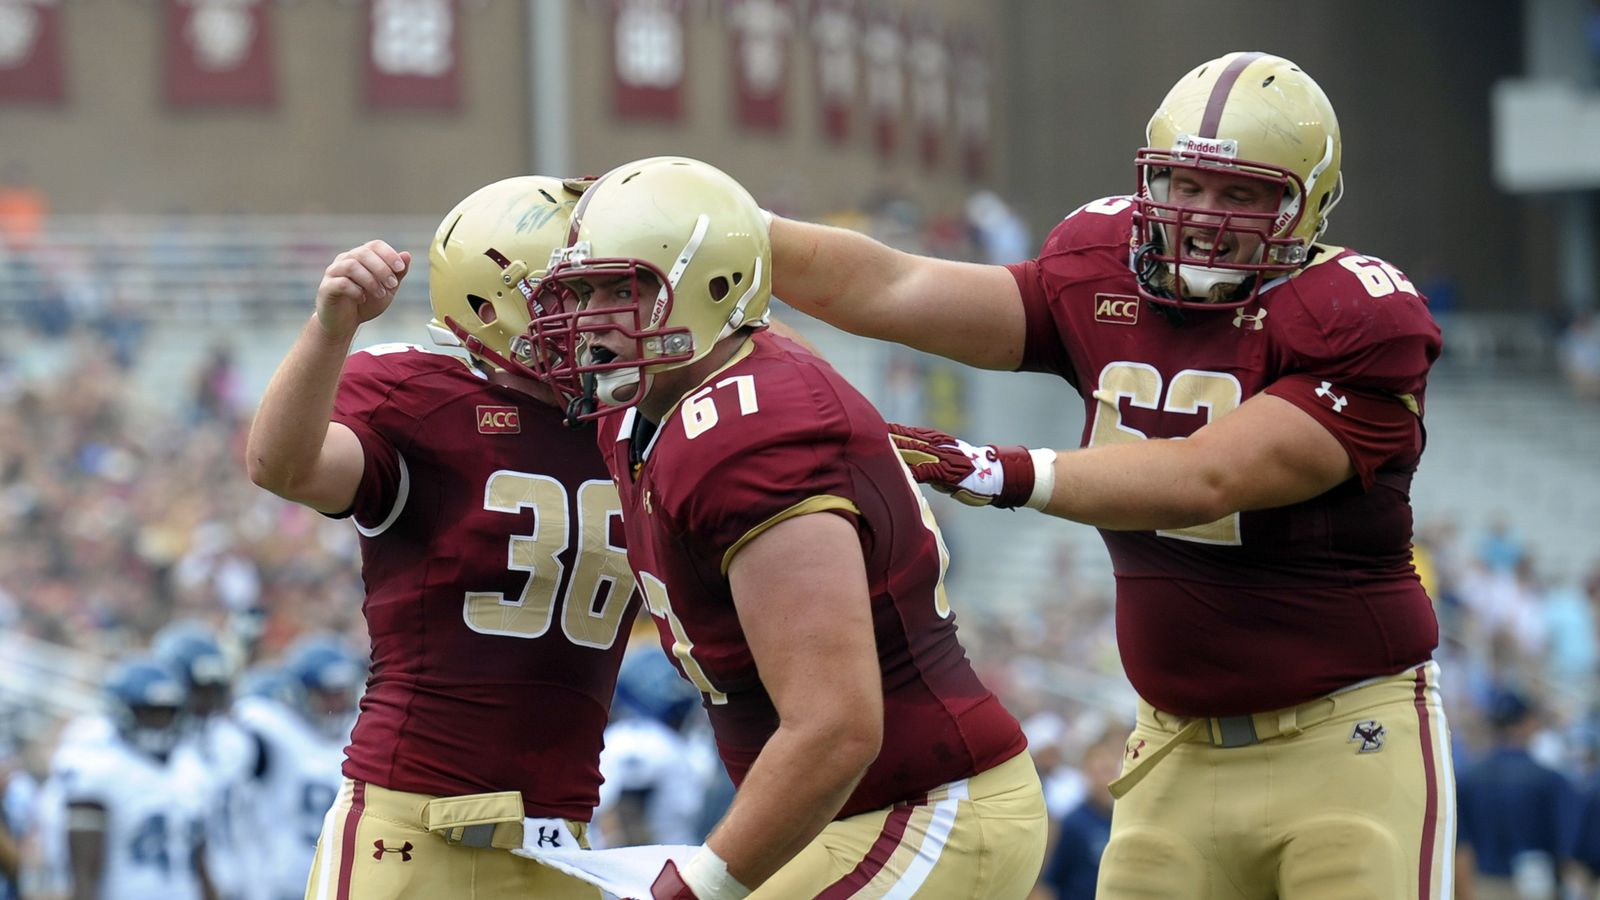 boston college eagles 5 4 - HD 1600×900